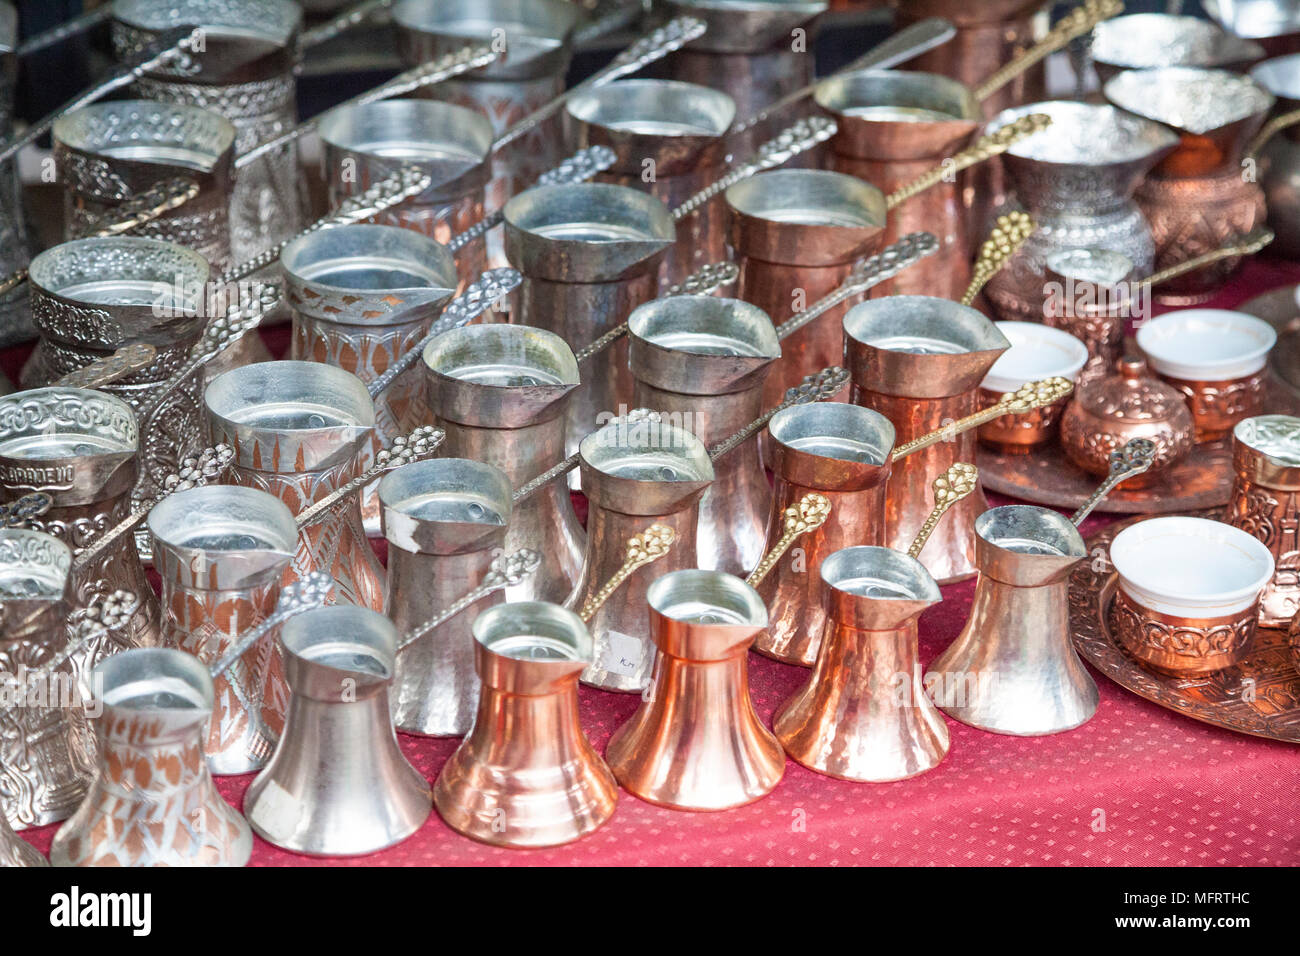 Rows of copper coffee pots on a souvenir stall in Sarajevo, Bosnia and Herzegovina - Stock Image